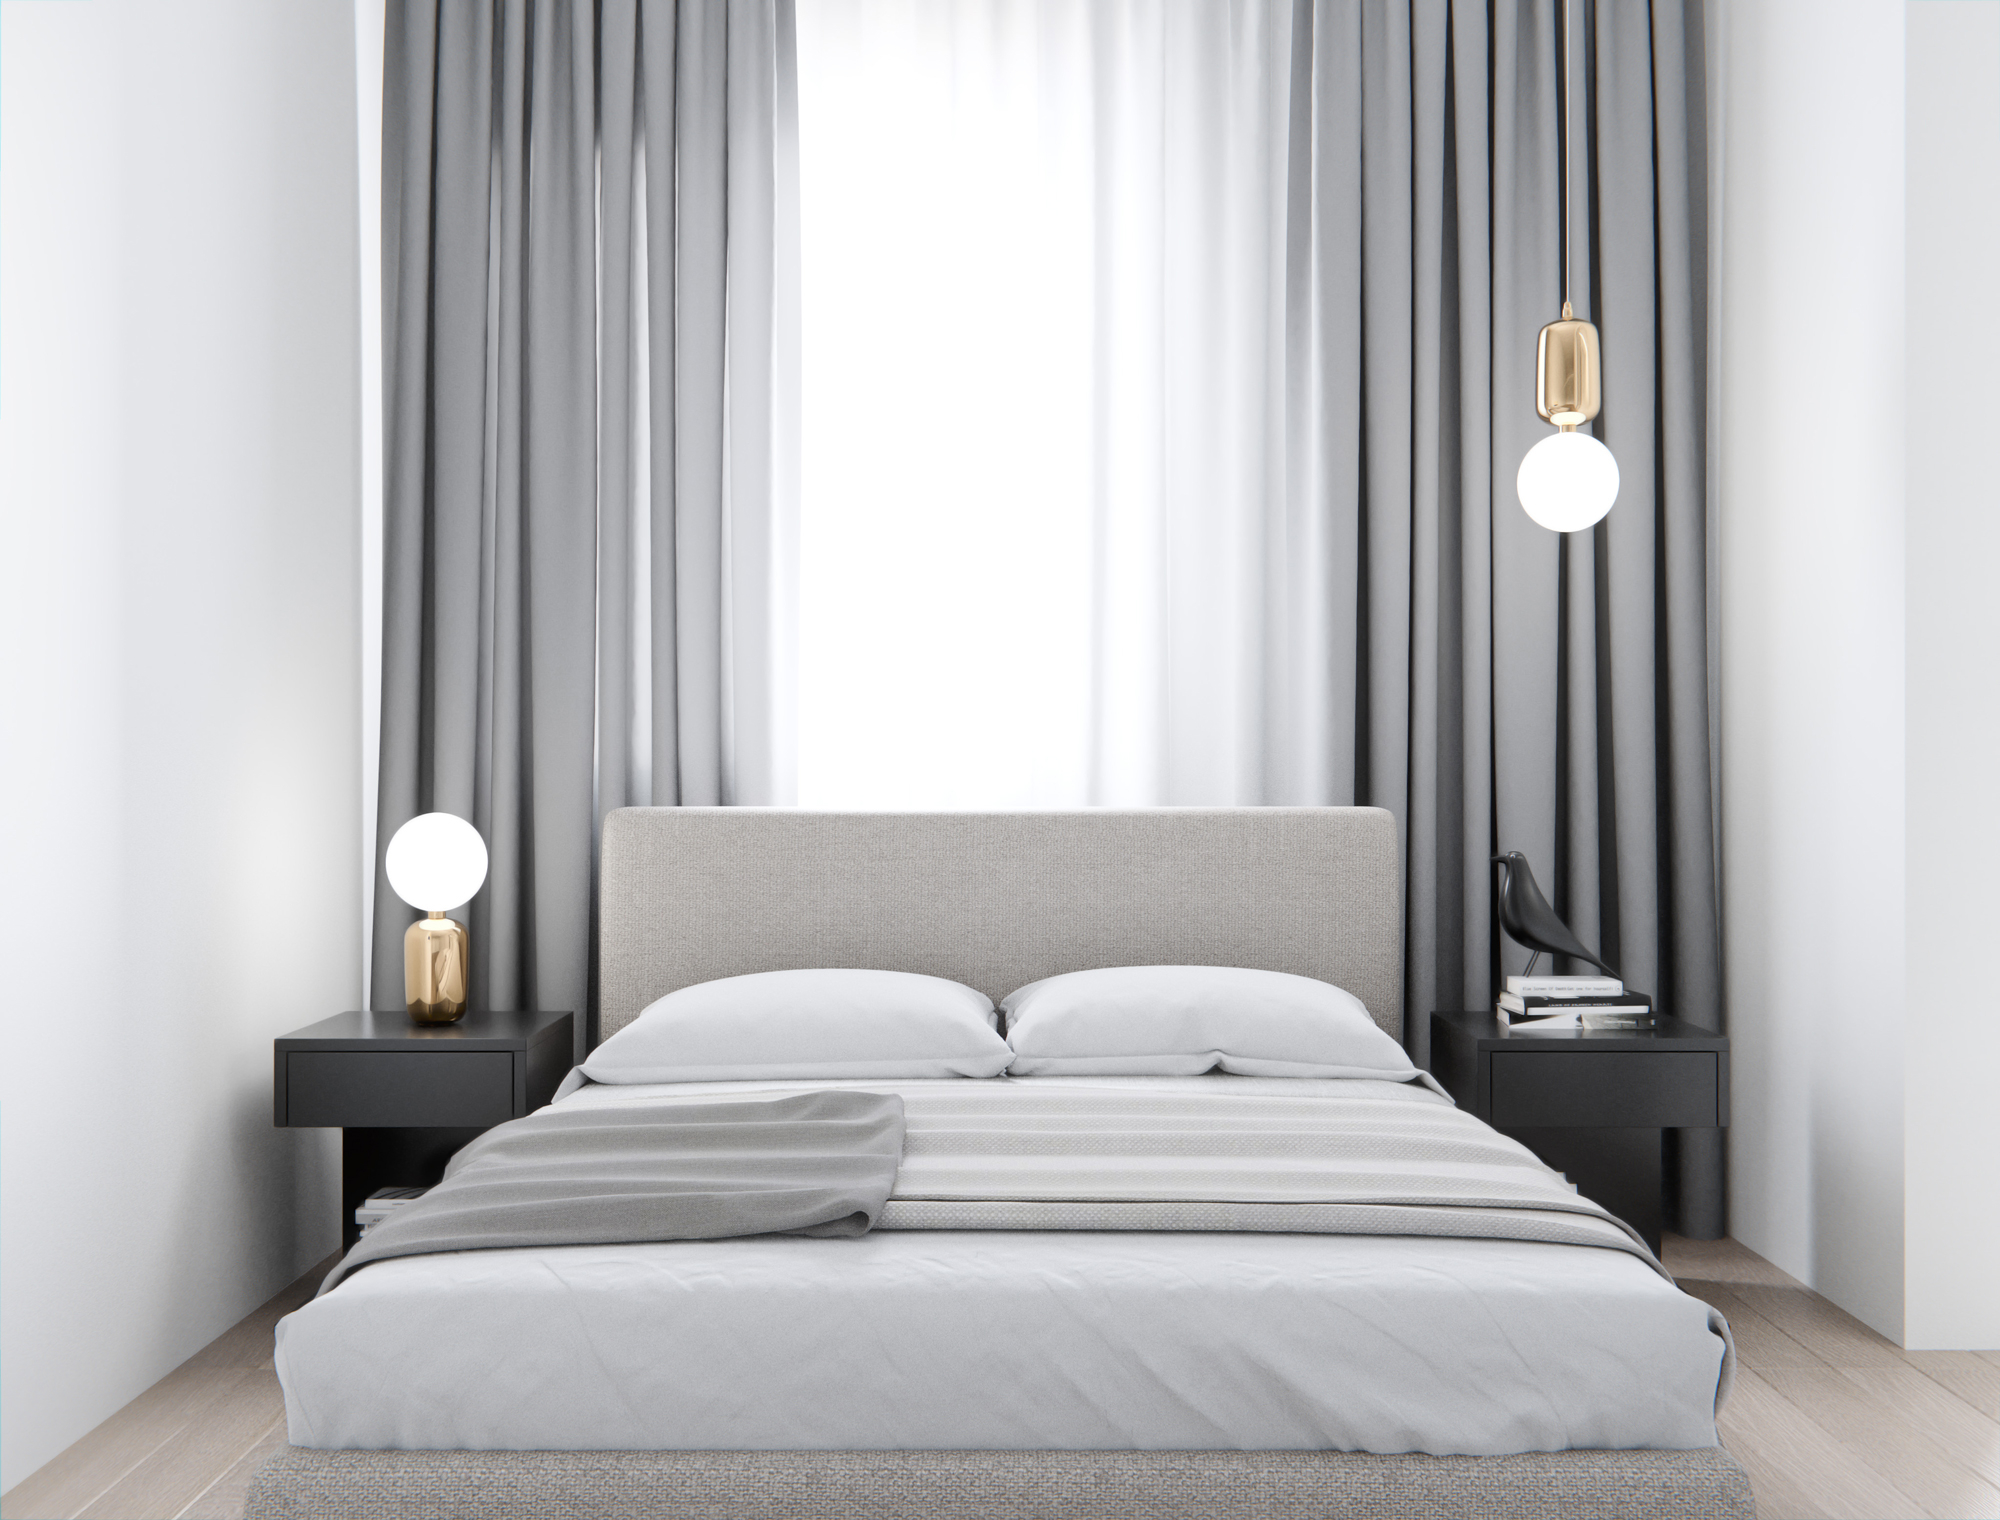 Bedroom Ideas 52 Modern Design Ideas For Your Bedroom The Luxpad with regard to 15 Some of the Coolest Designs of How to Craft Modern Bedroom Images